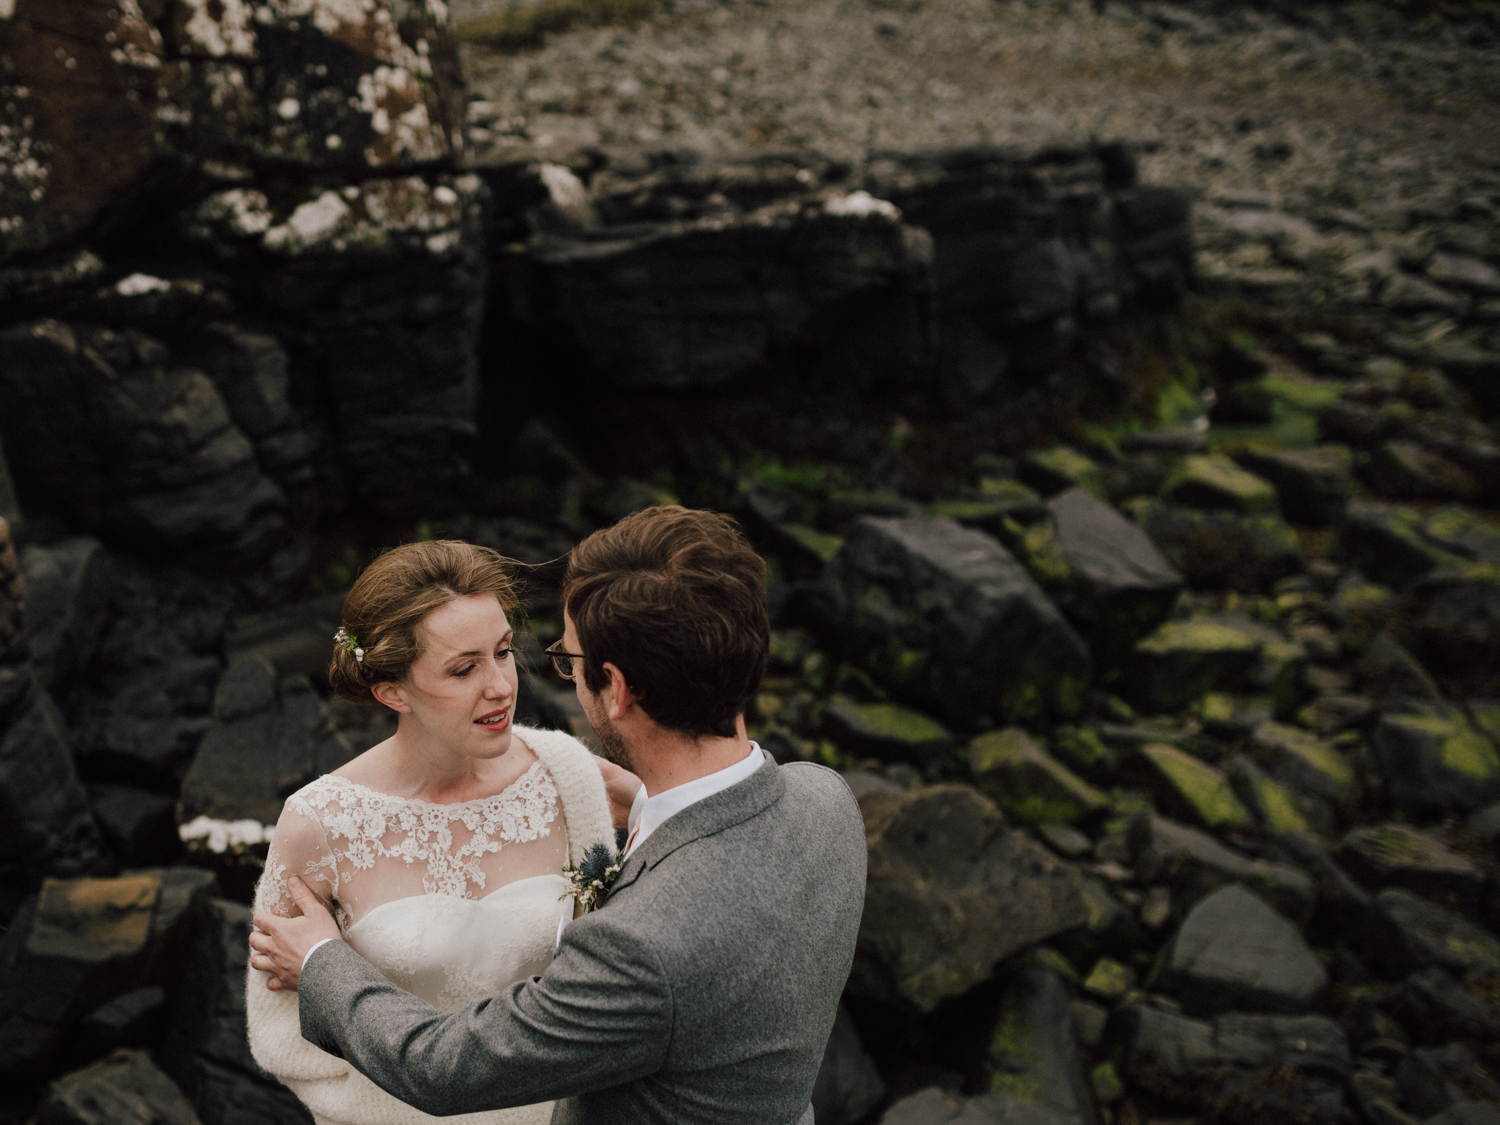 capyture-wedding-photographer-destination-nature-intimate-wedding-isle-of-skye-scotland-249